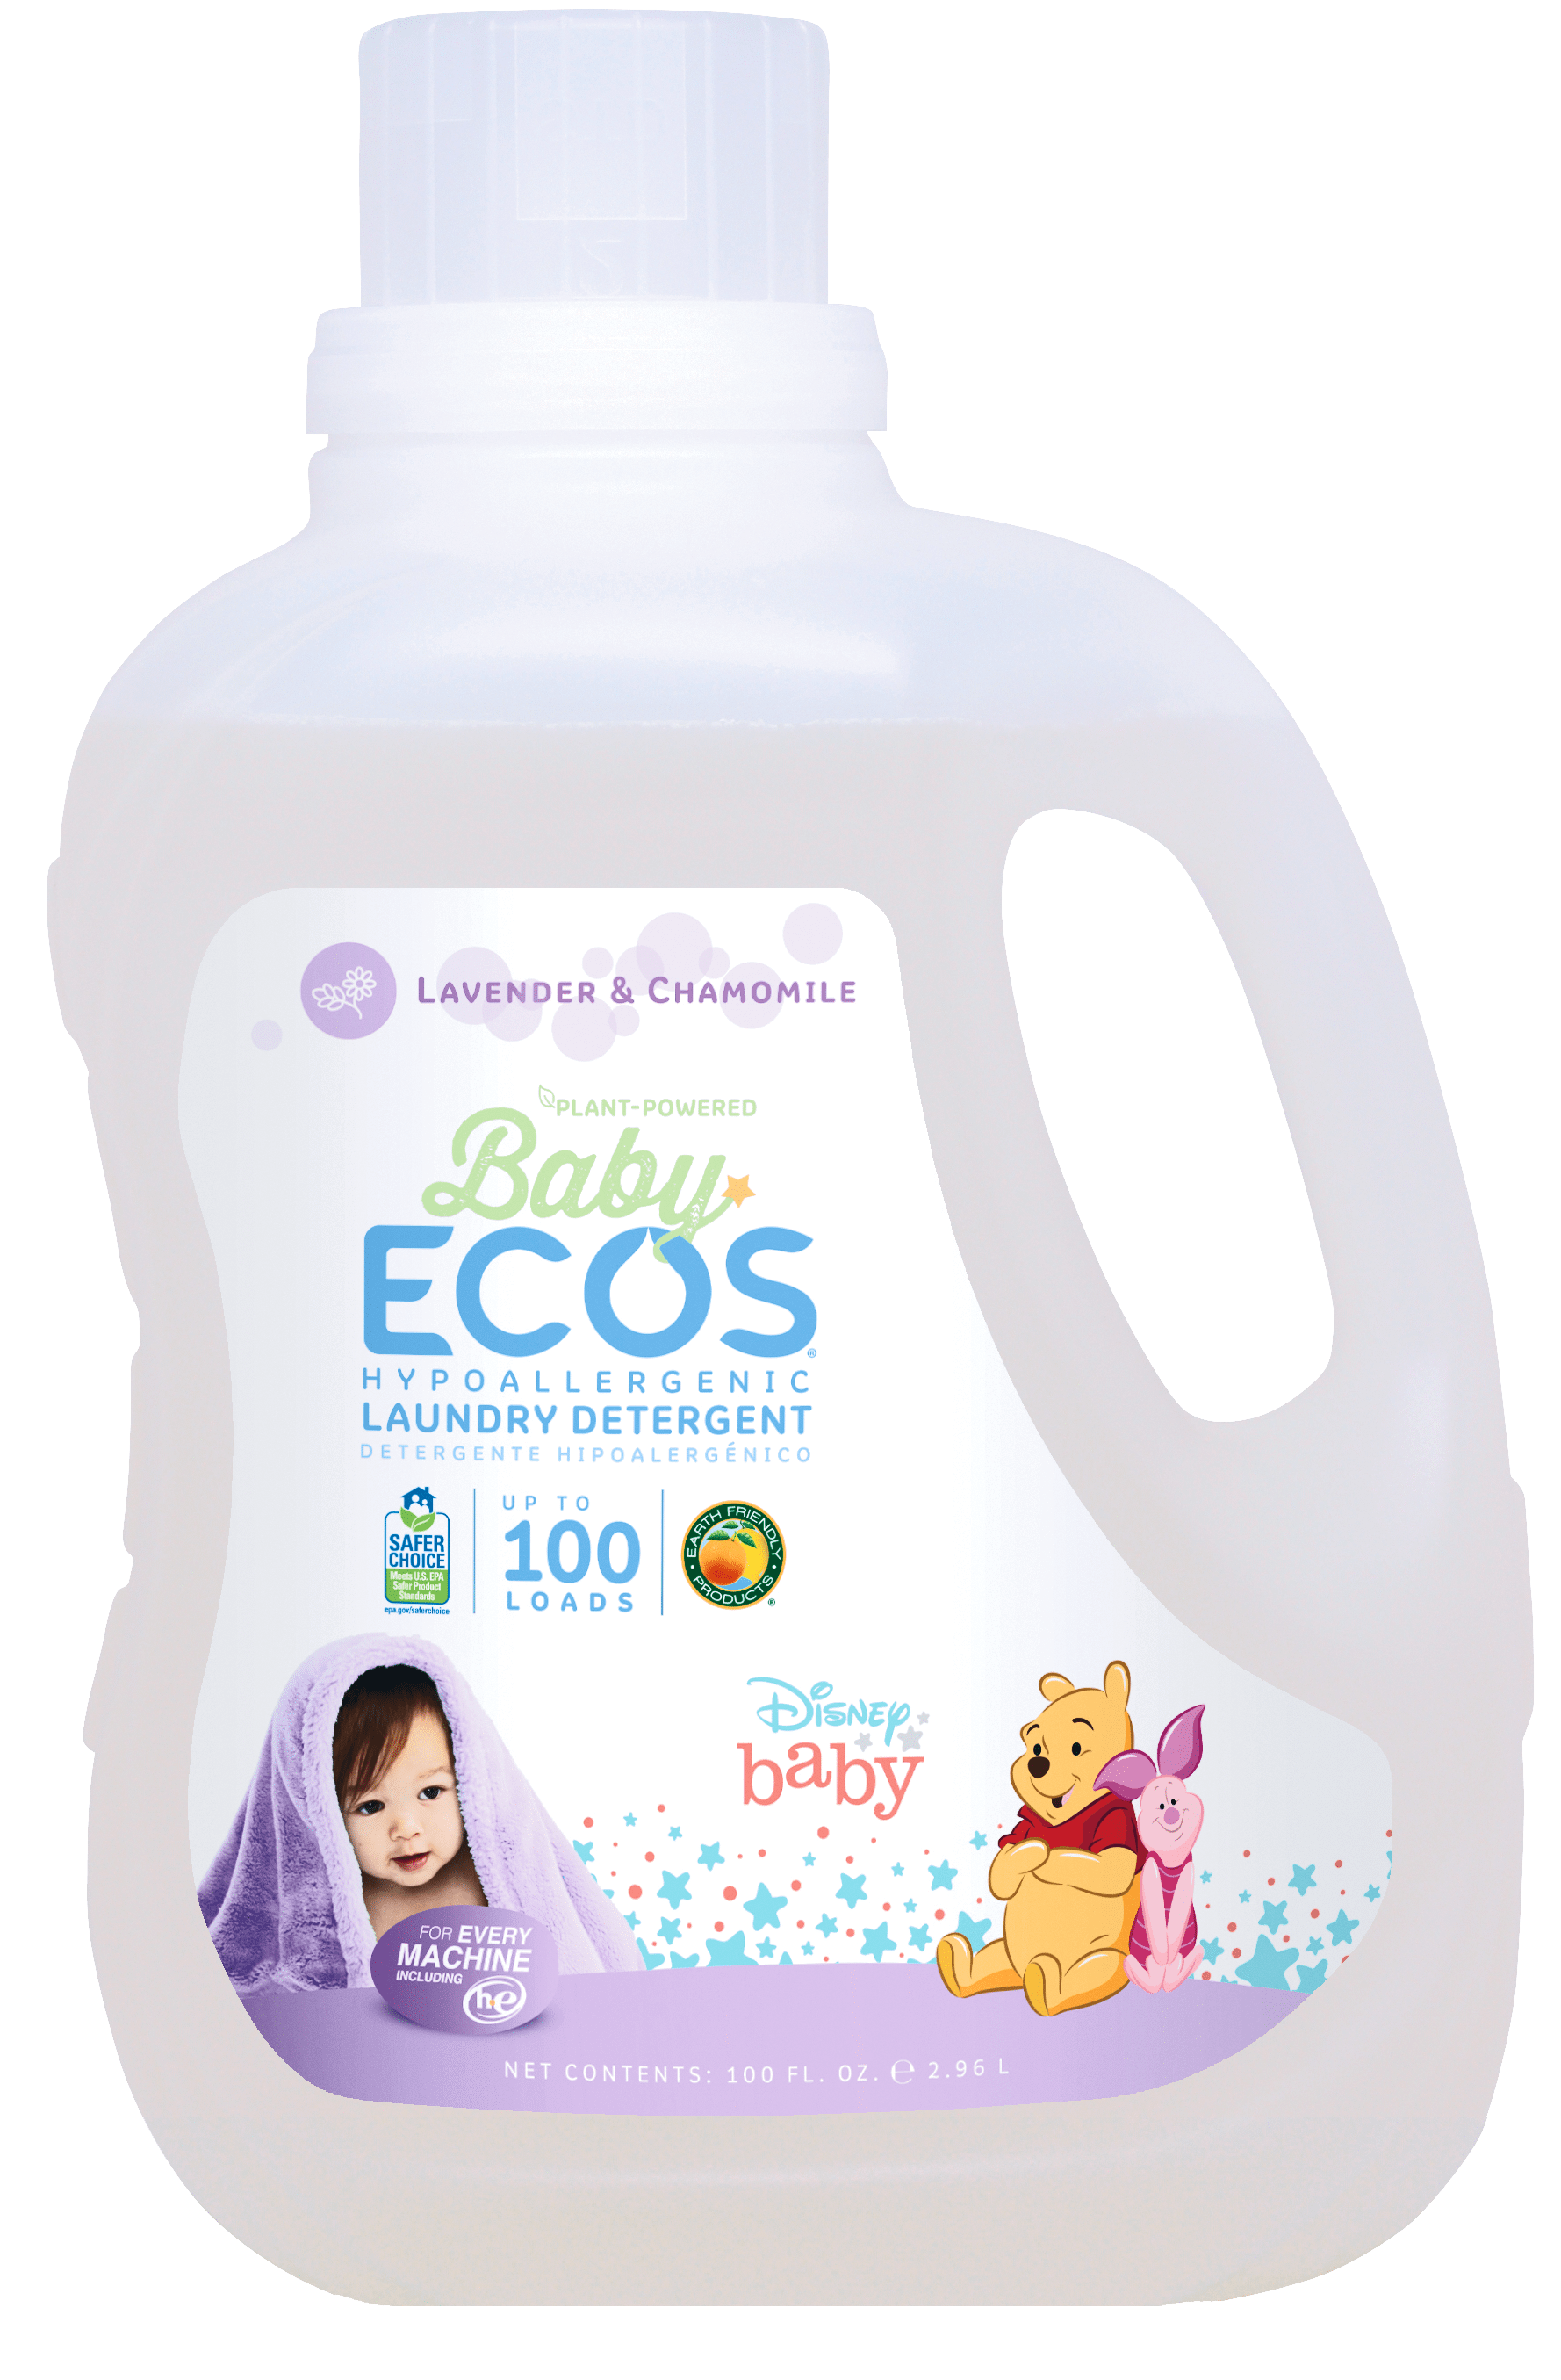 All Natural Baby Detergent Hypoallergenic Baby Laundry Ecos